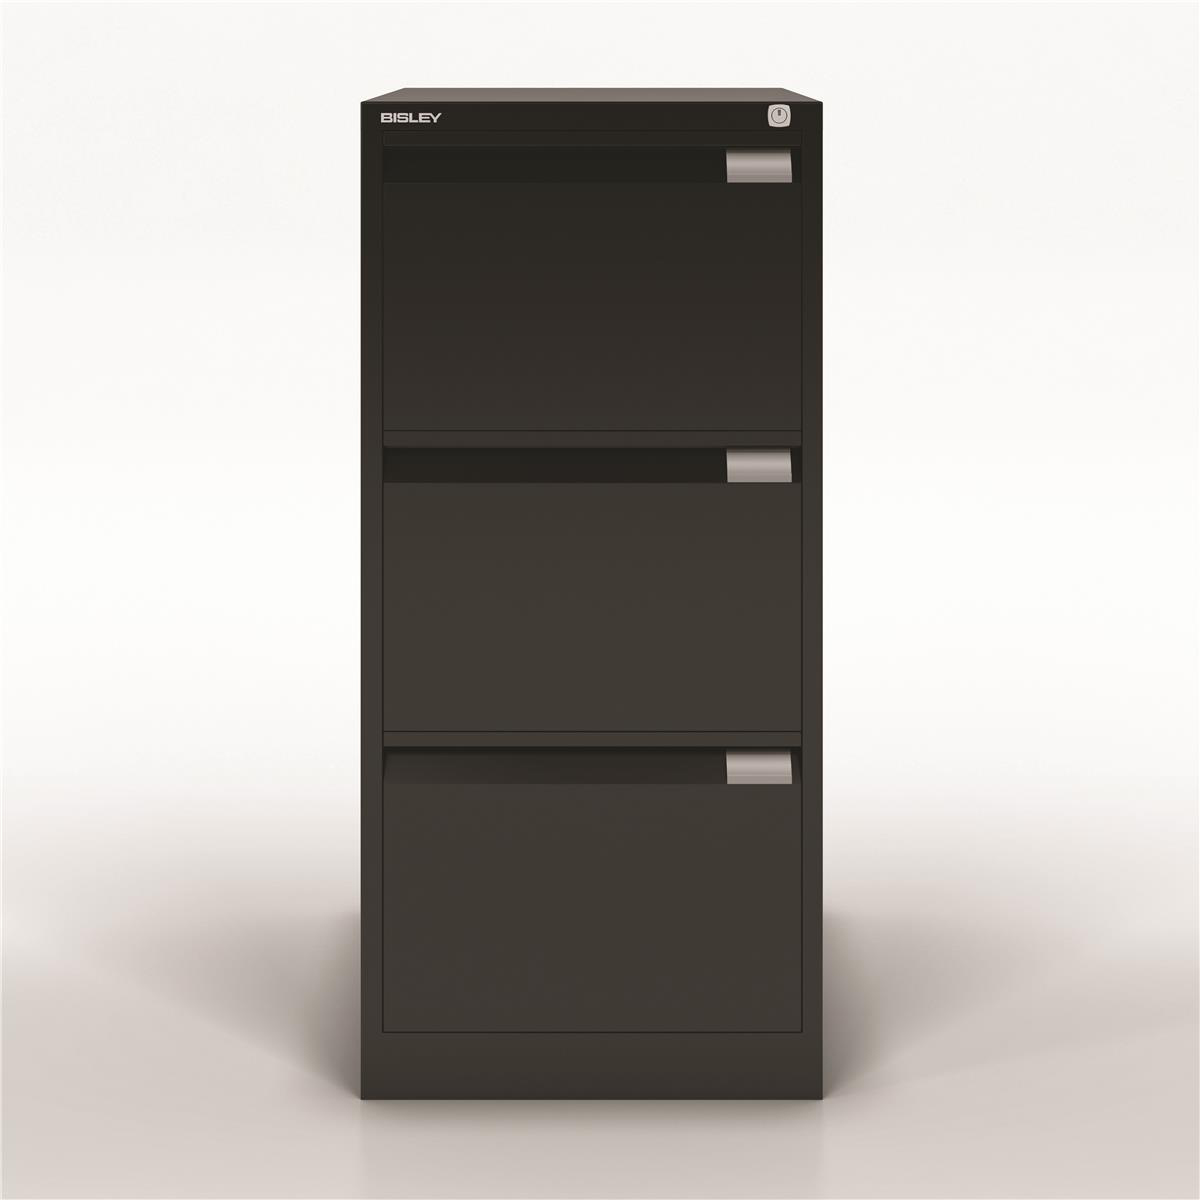 Bisley Filing Cabinet 470x622x1016mm 3 Drawer Black Ref 1633-av1